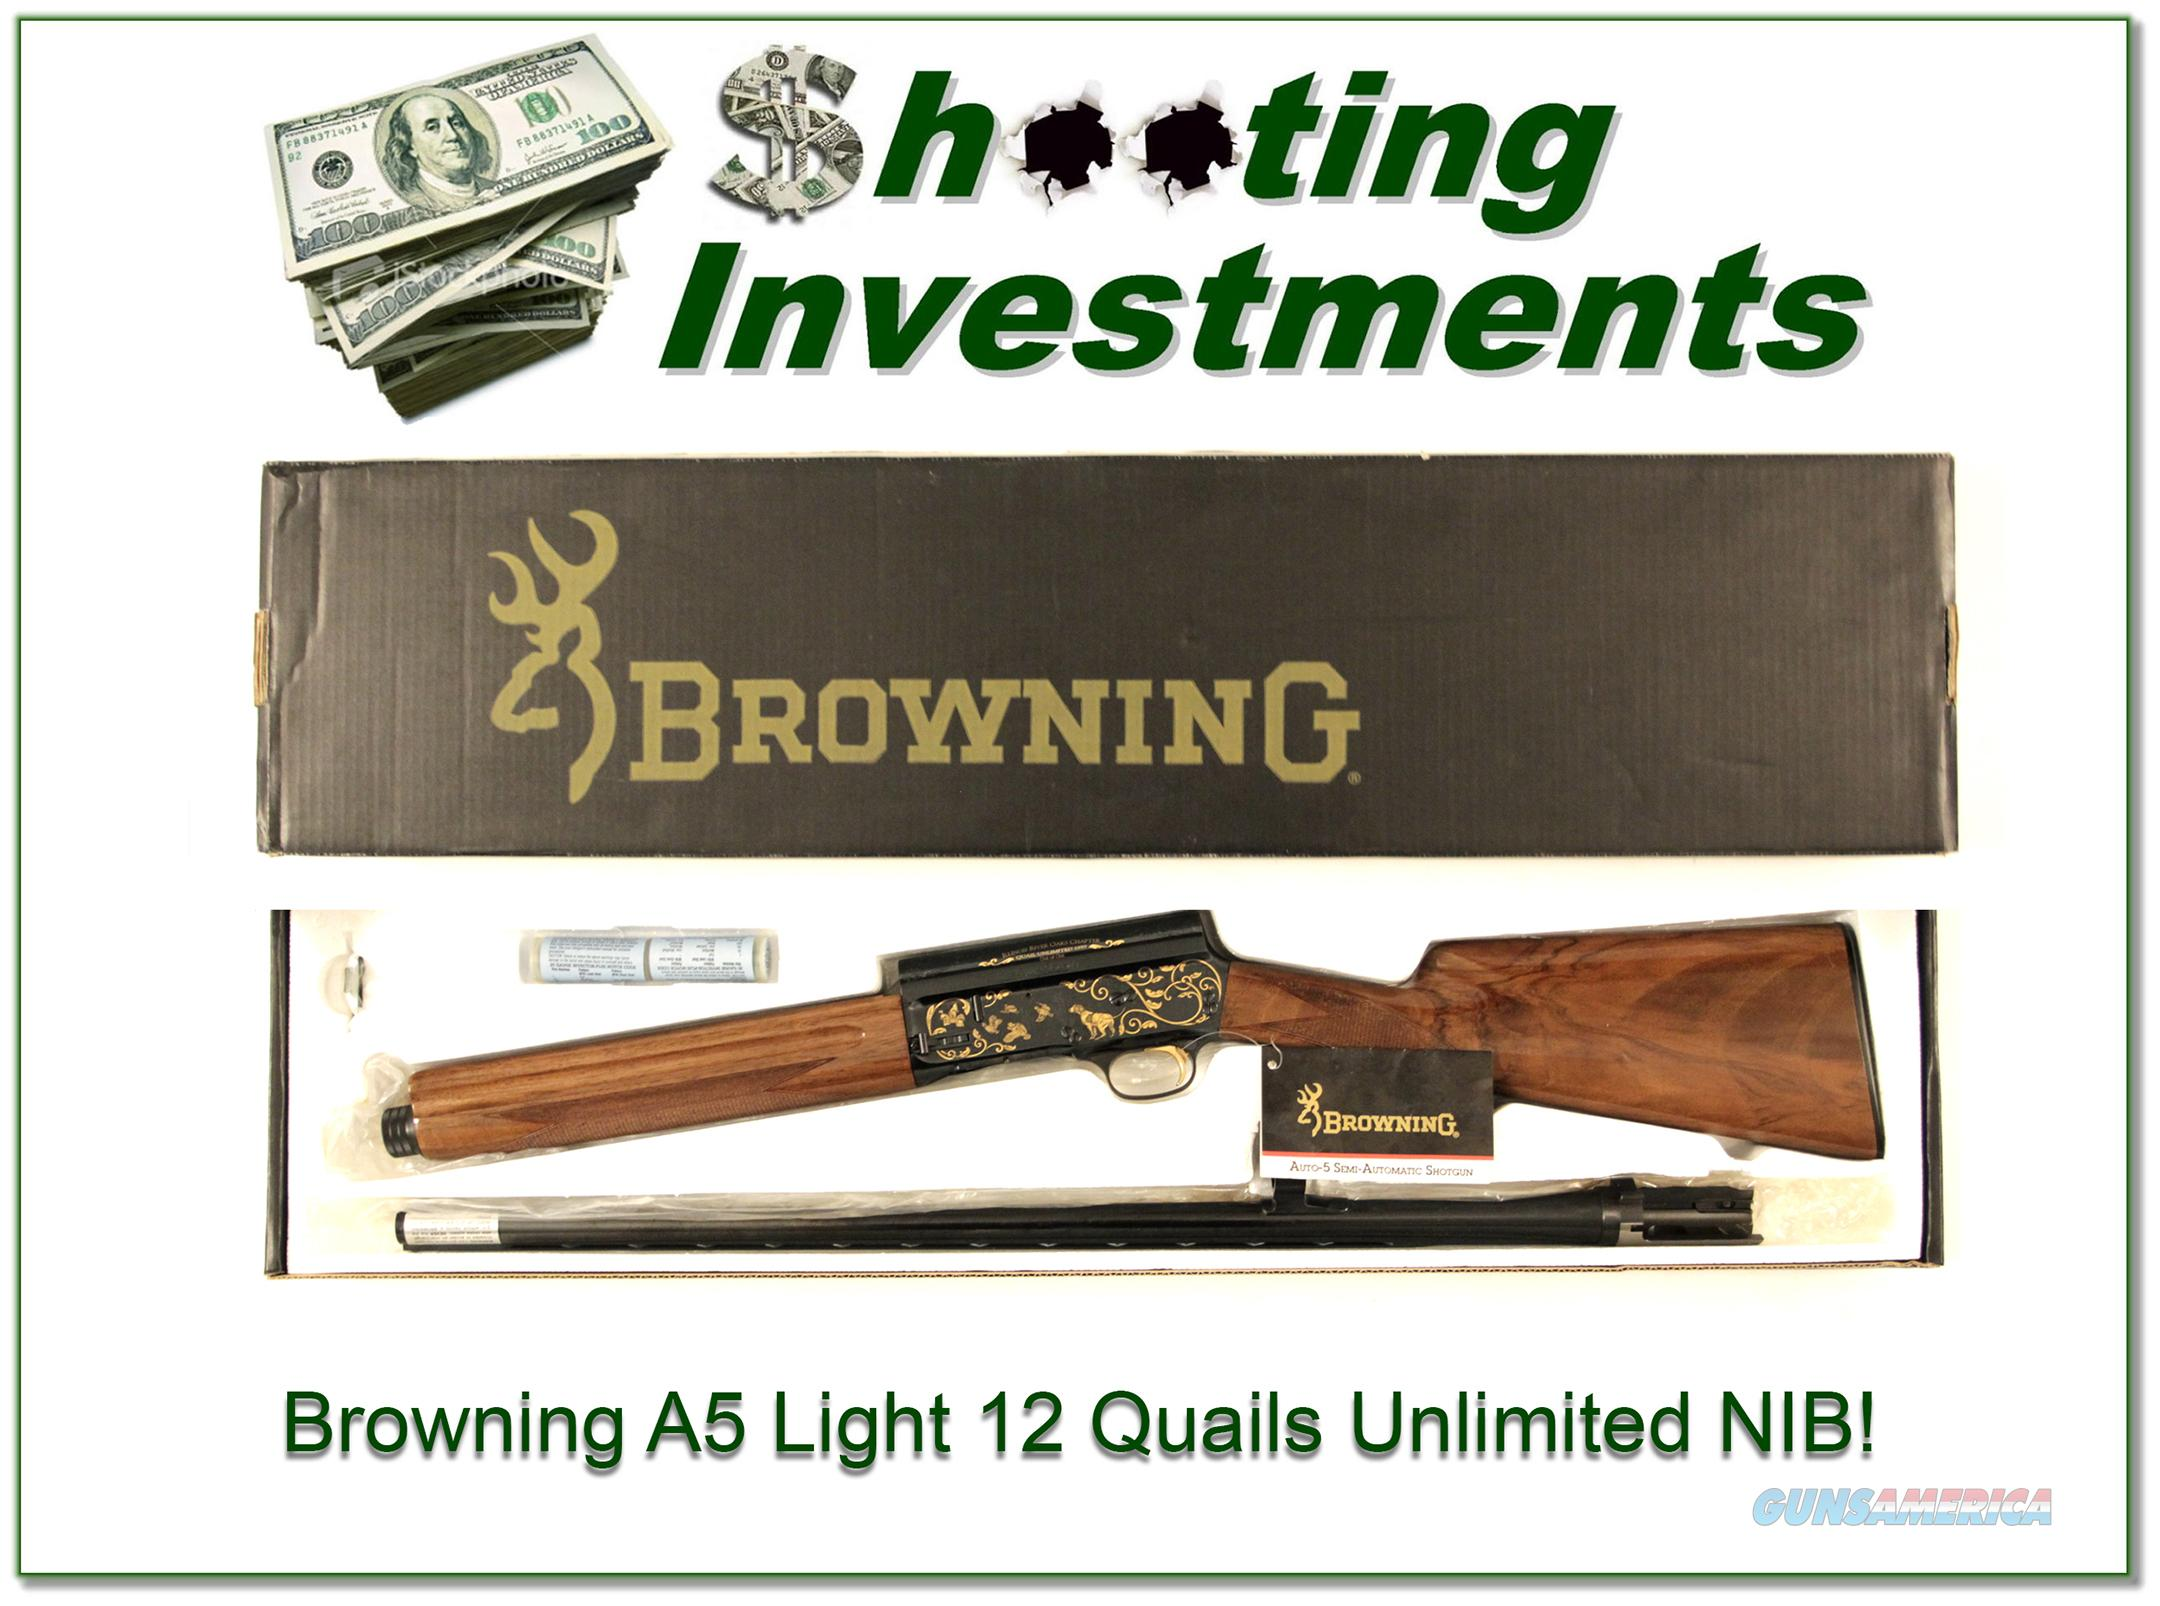 Browning A5 Light 12 Quails Unlimited 1 of 1 NIB!  Guns > Shotguns > Browning Shotguns > Autoloaders > Hunting